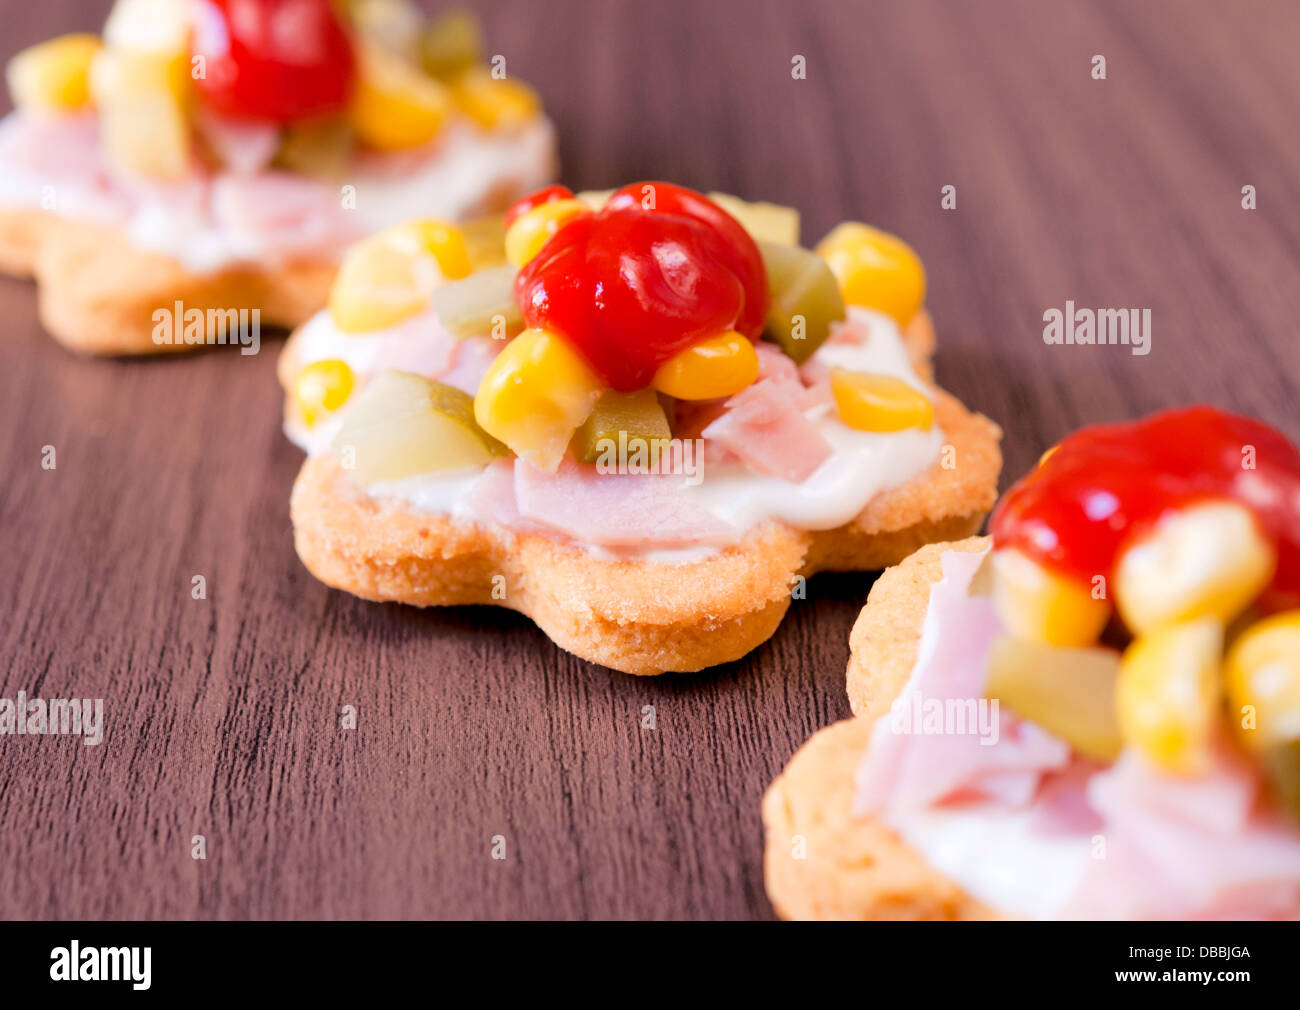 Selective focus on appetizer in the middle - Stock Image